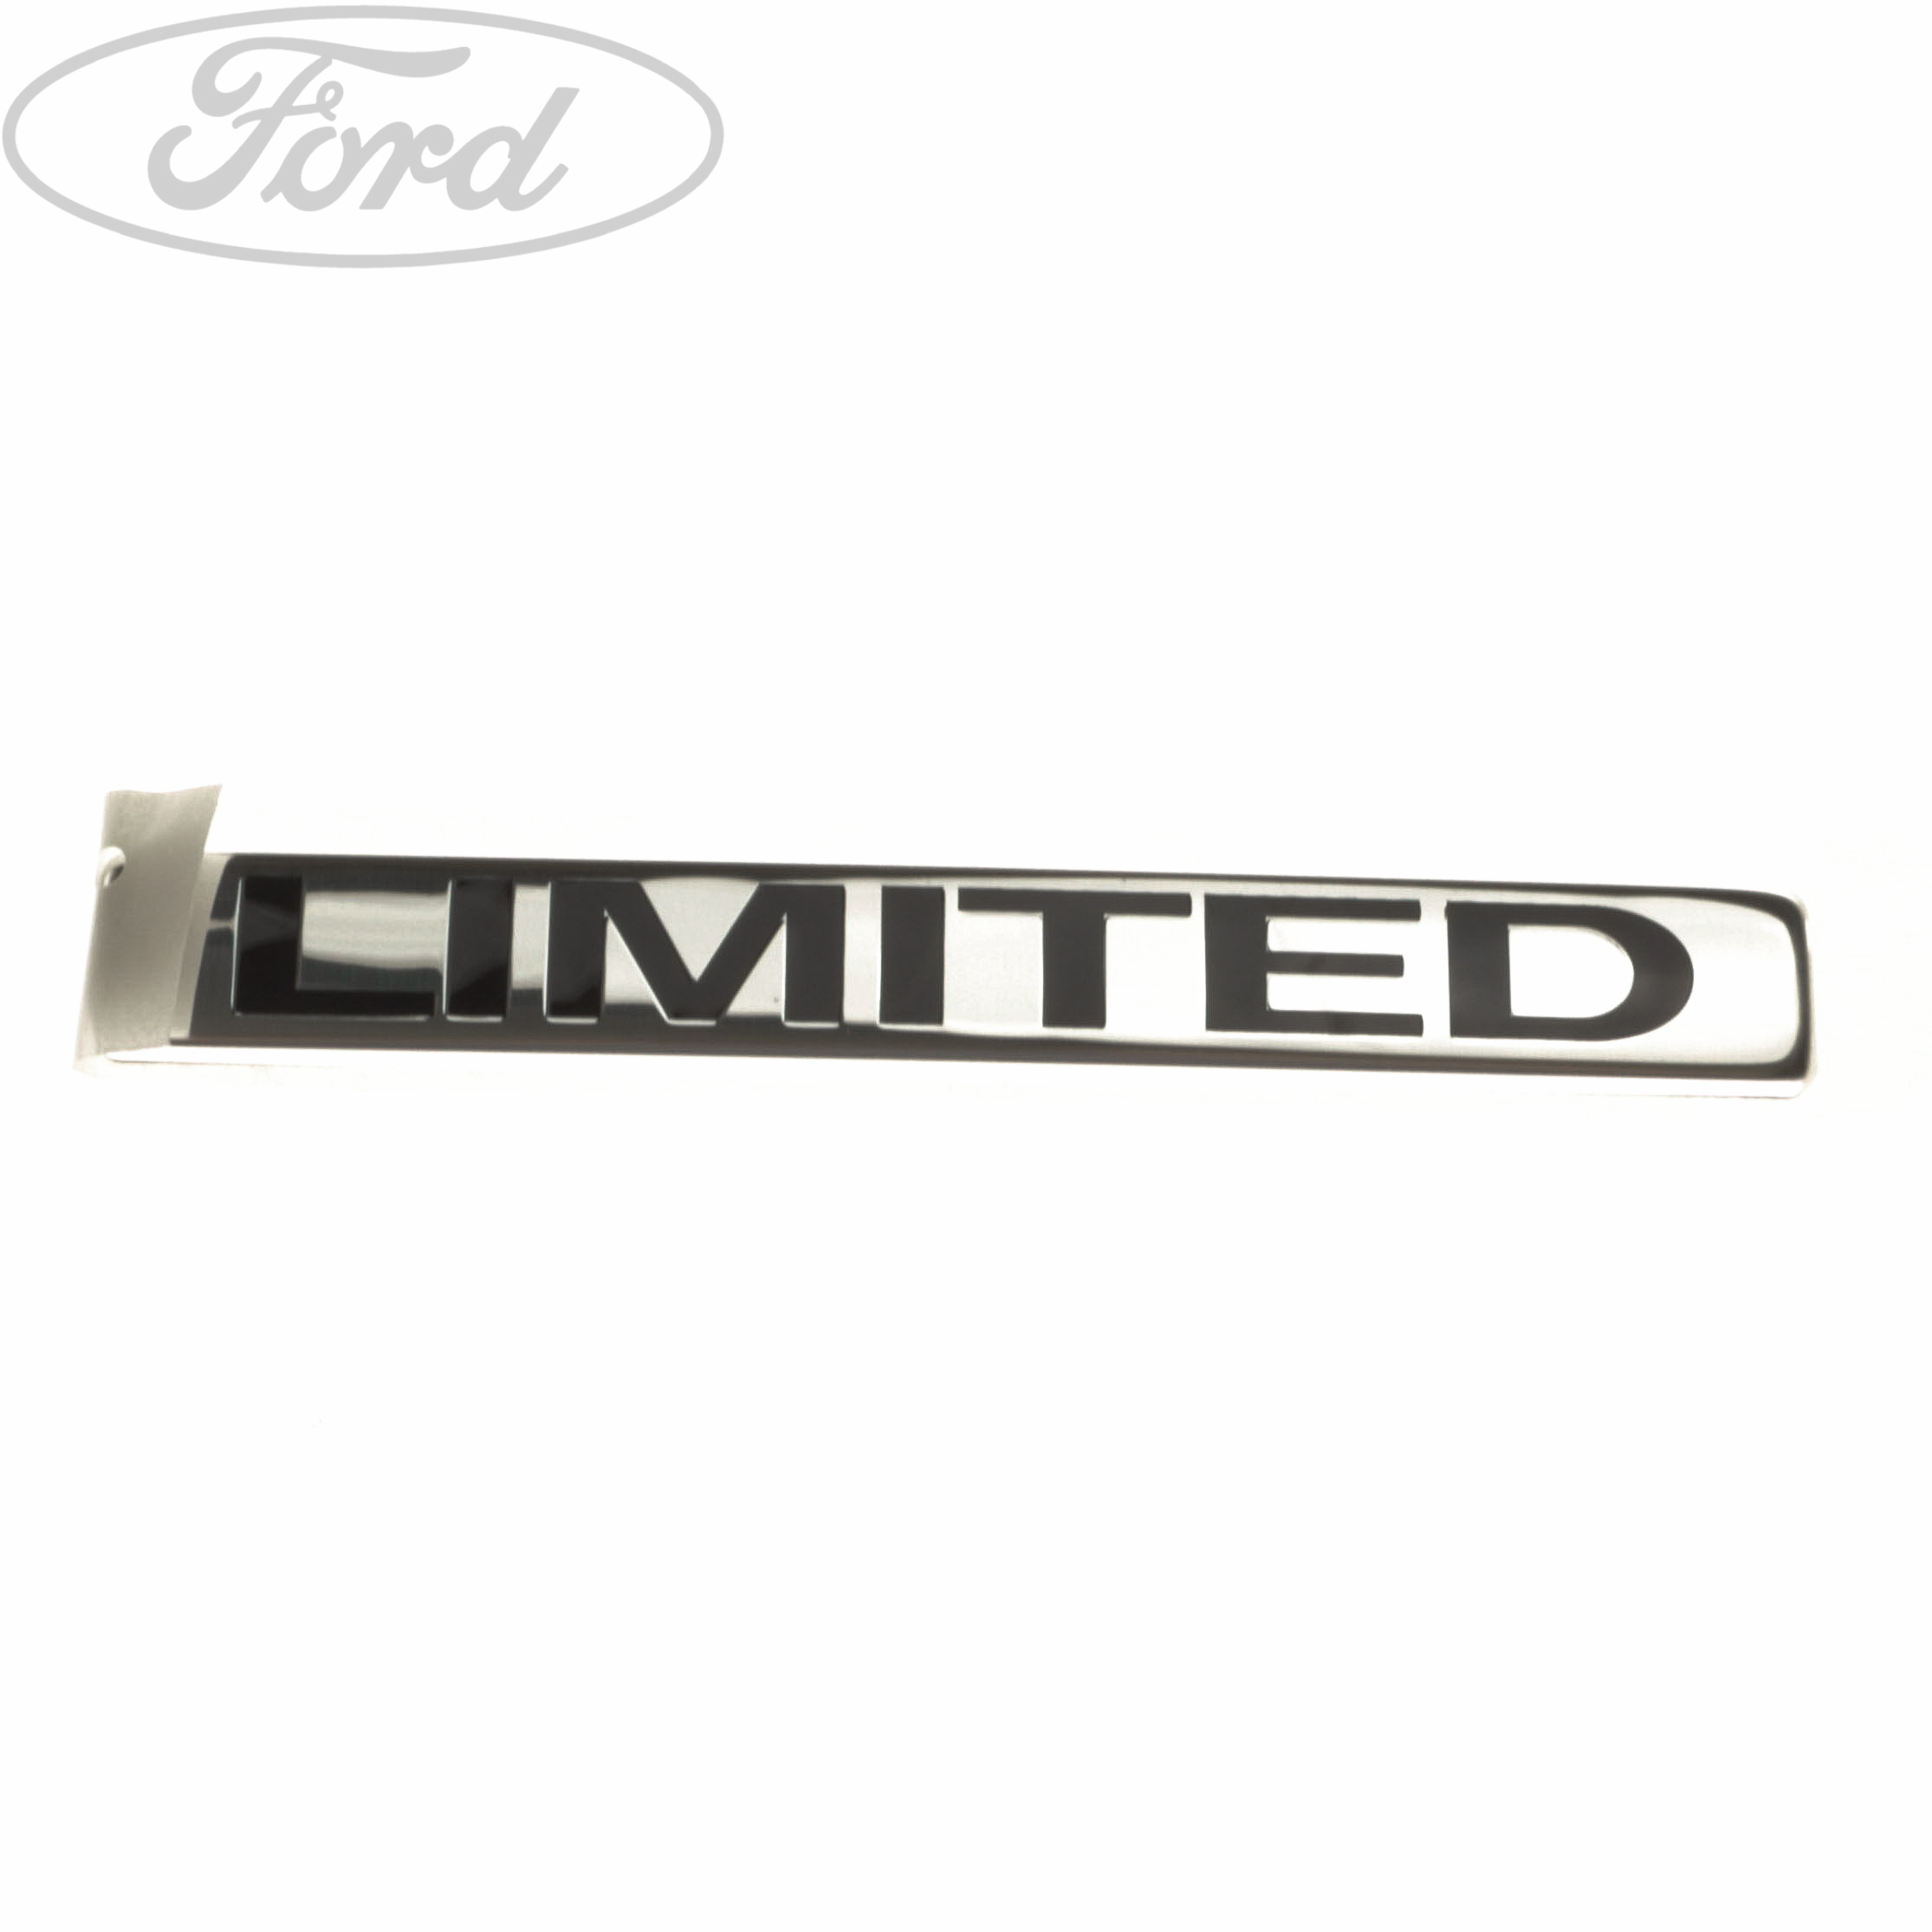 Genuine Ford Transit Limited Rear Door Name Plate Badge